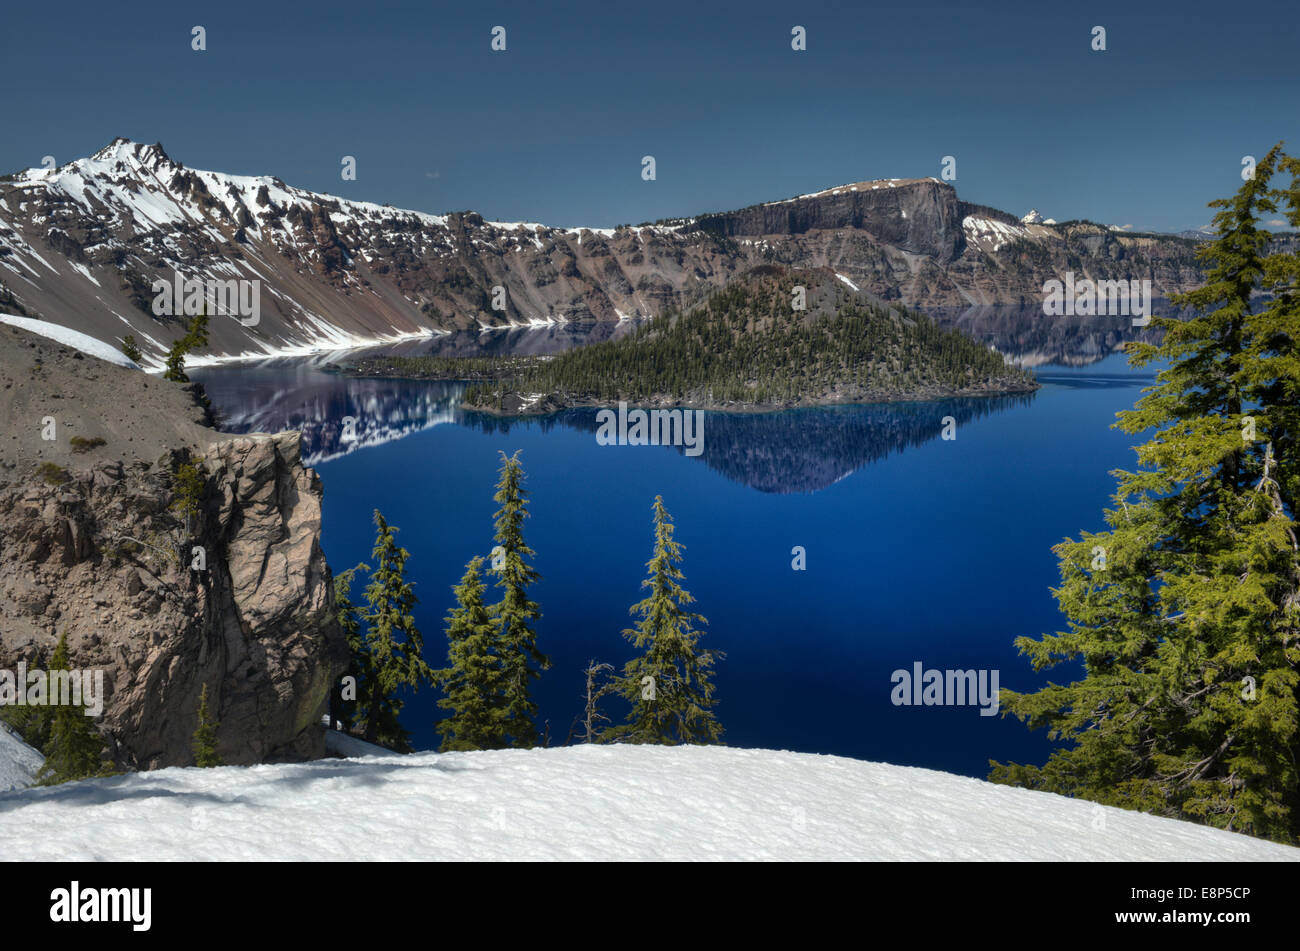 Crater Lake, Oregon in late spring, as seen from Discovery Point - Stock Image